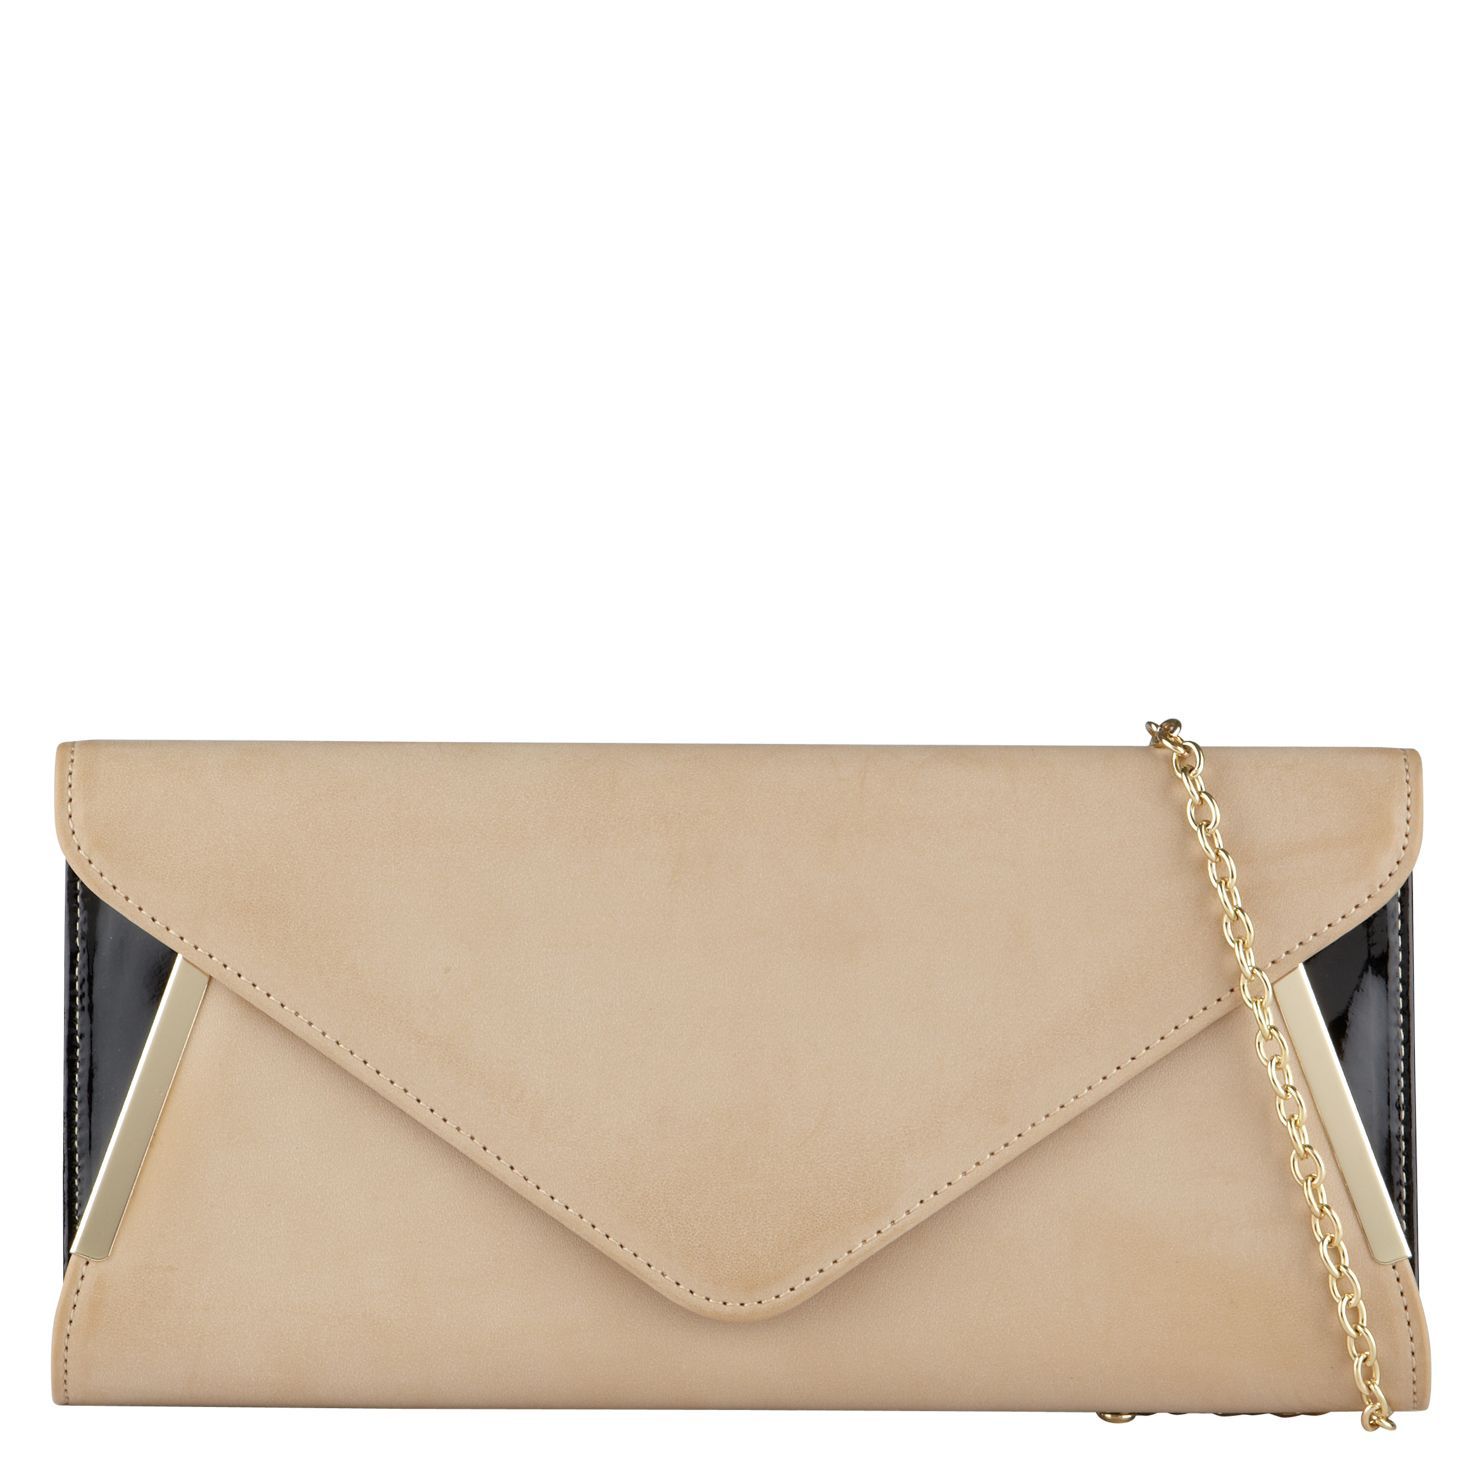 Bergeron clutch bag